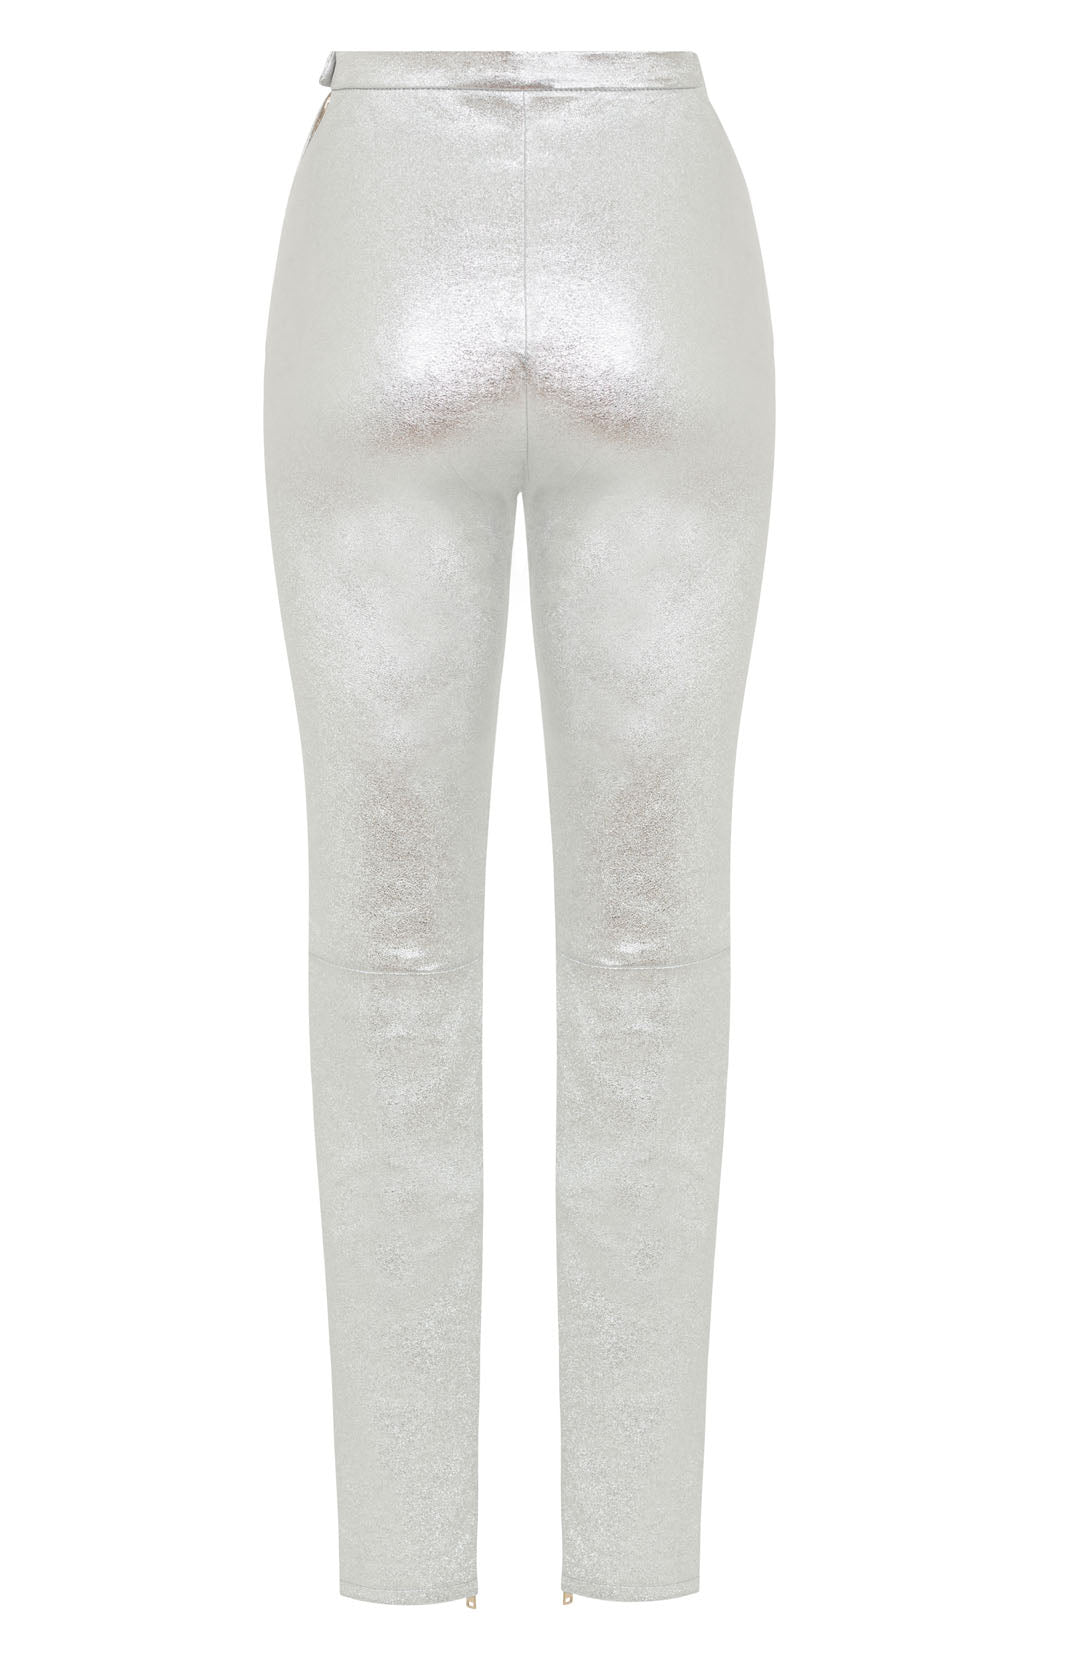 silver trousers womens | silver skinny jeans womens | skinny leather trousers women